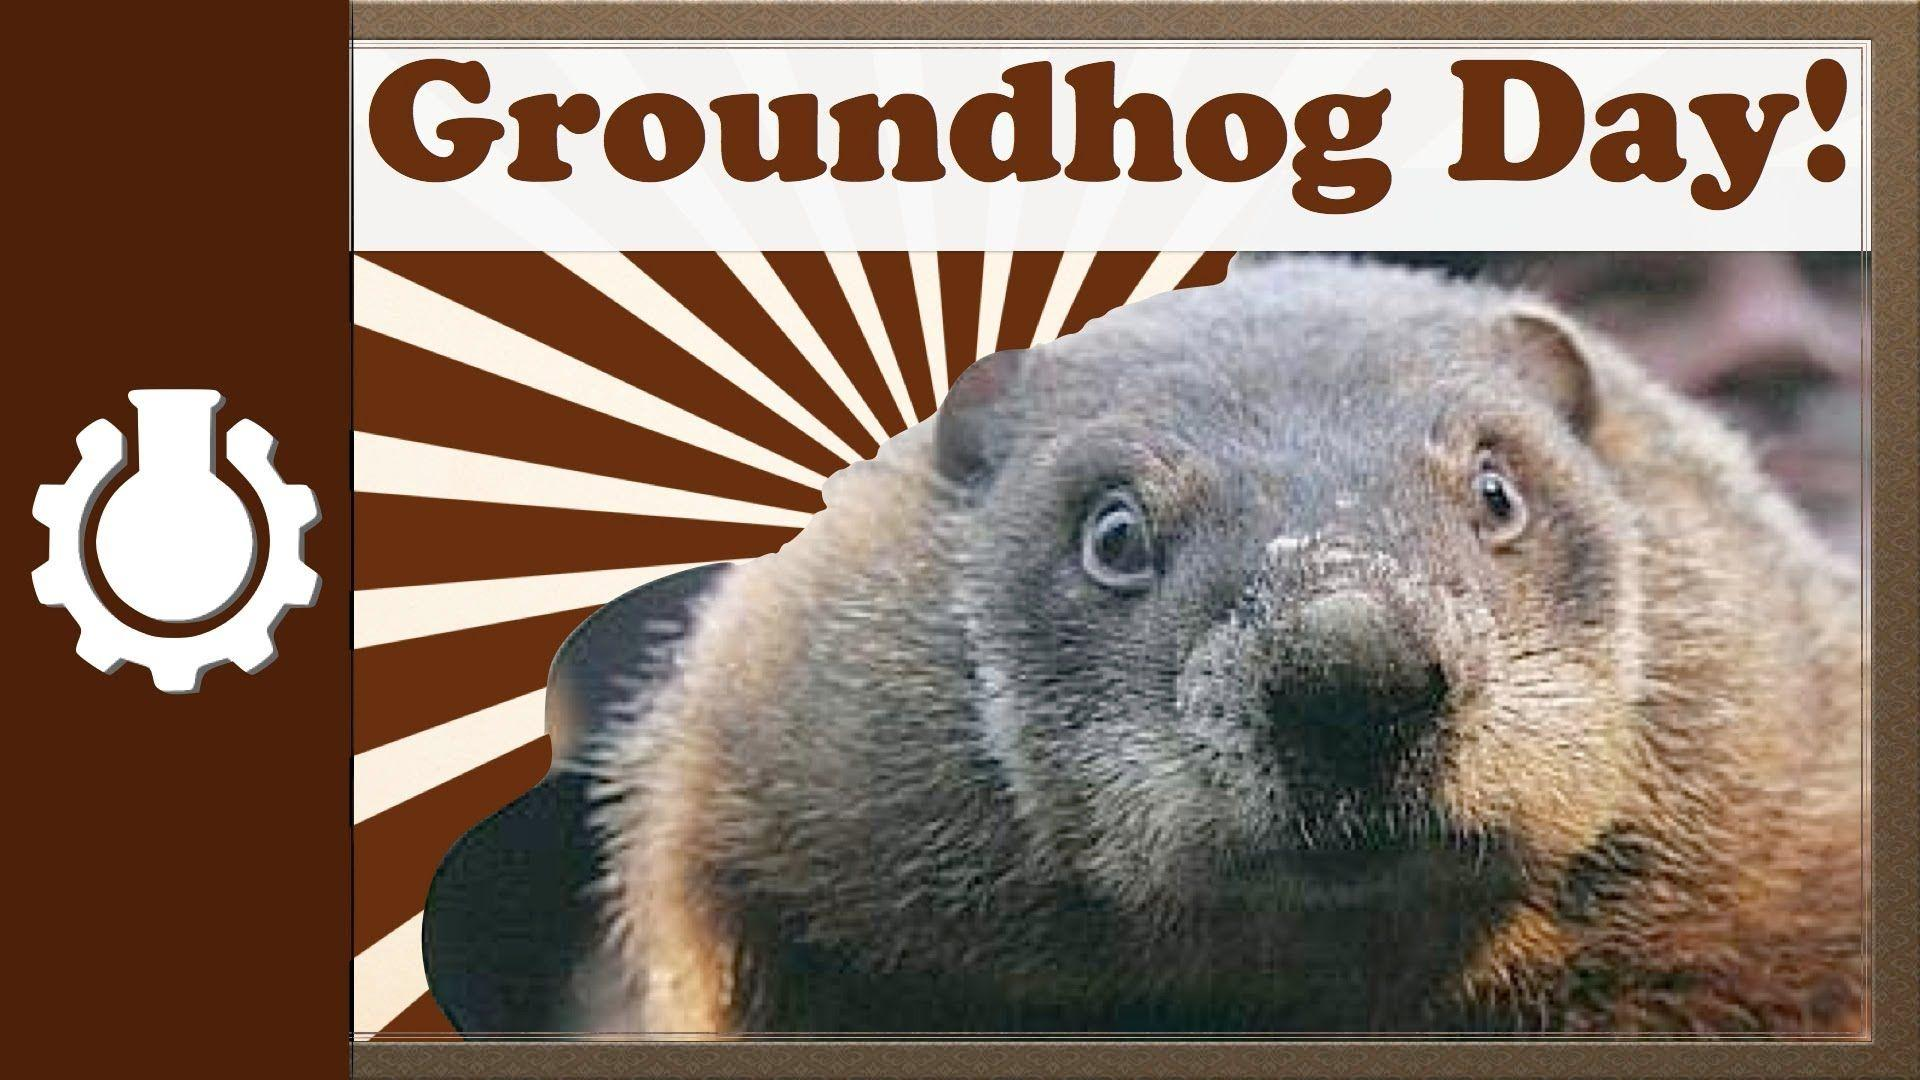 Groundhog Day 2018 Wallpapers - Wallpaper Cave